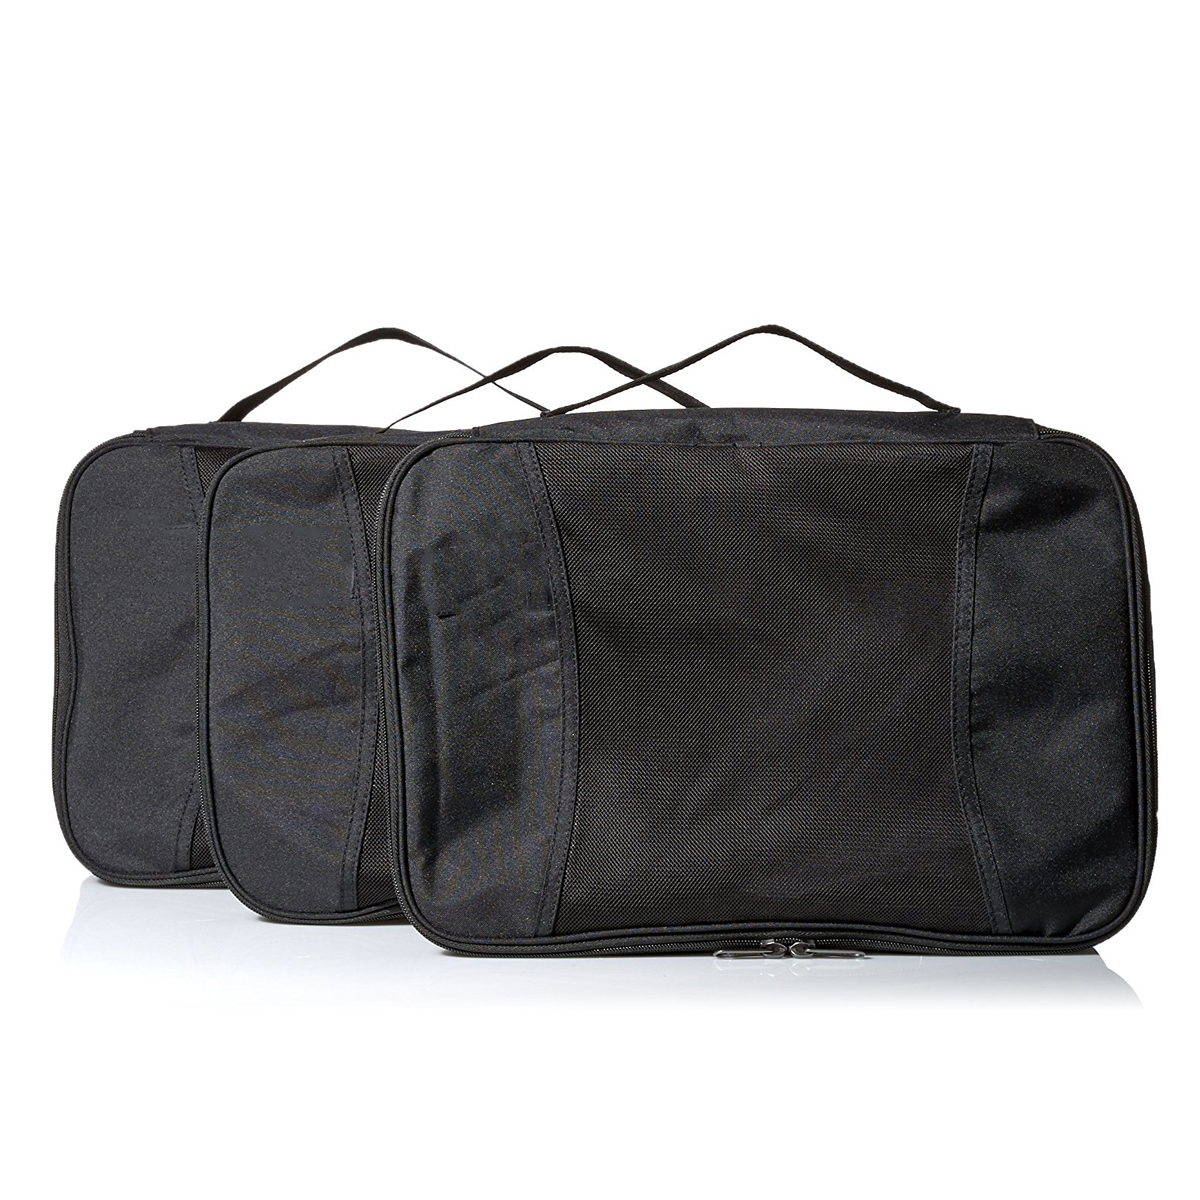 100% RPET 300D black packing cube for travelling